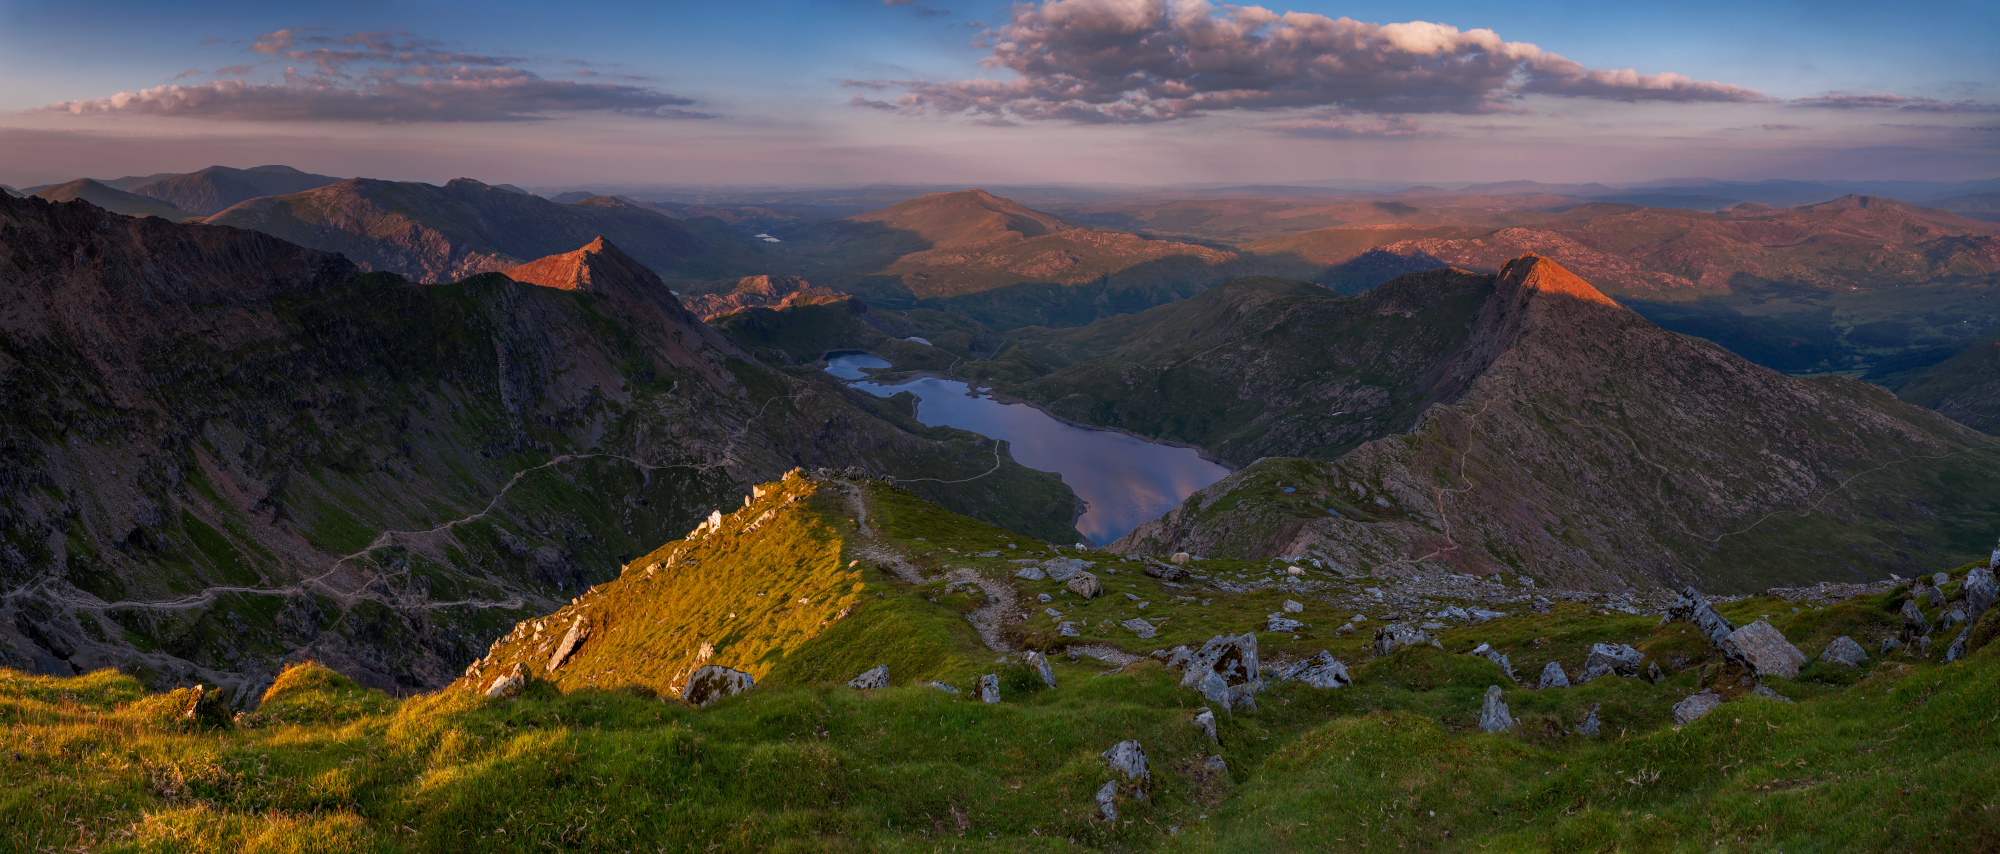 Landscape photography / Snowdon summit view from the Snowdon Ranger Path at Autumn sunrise